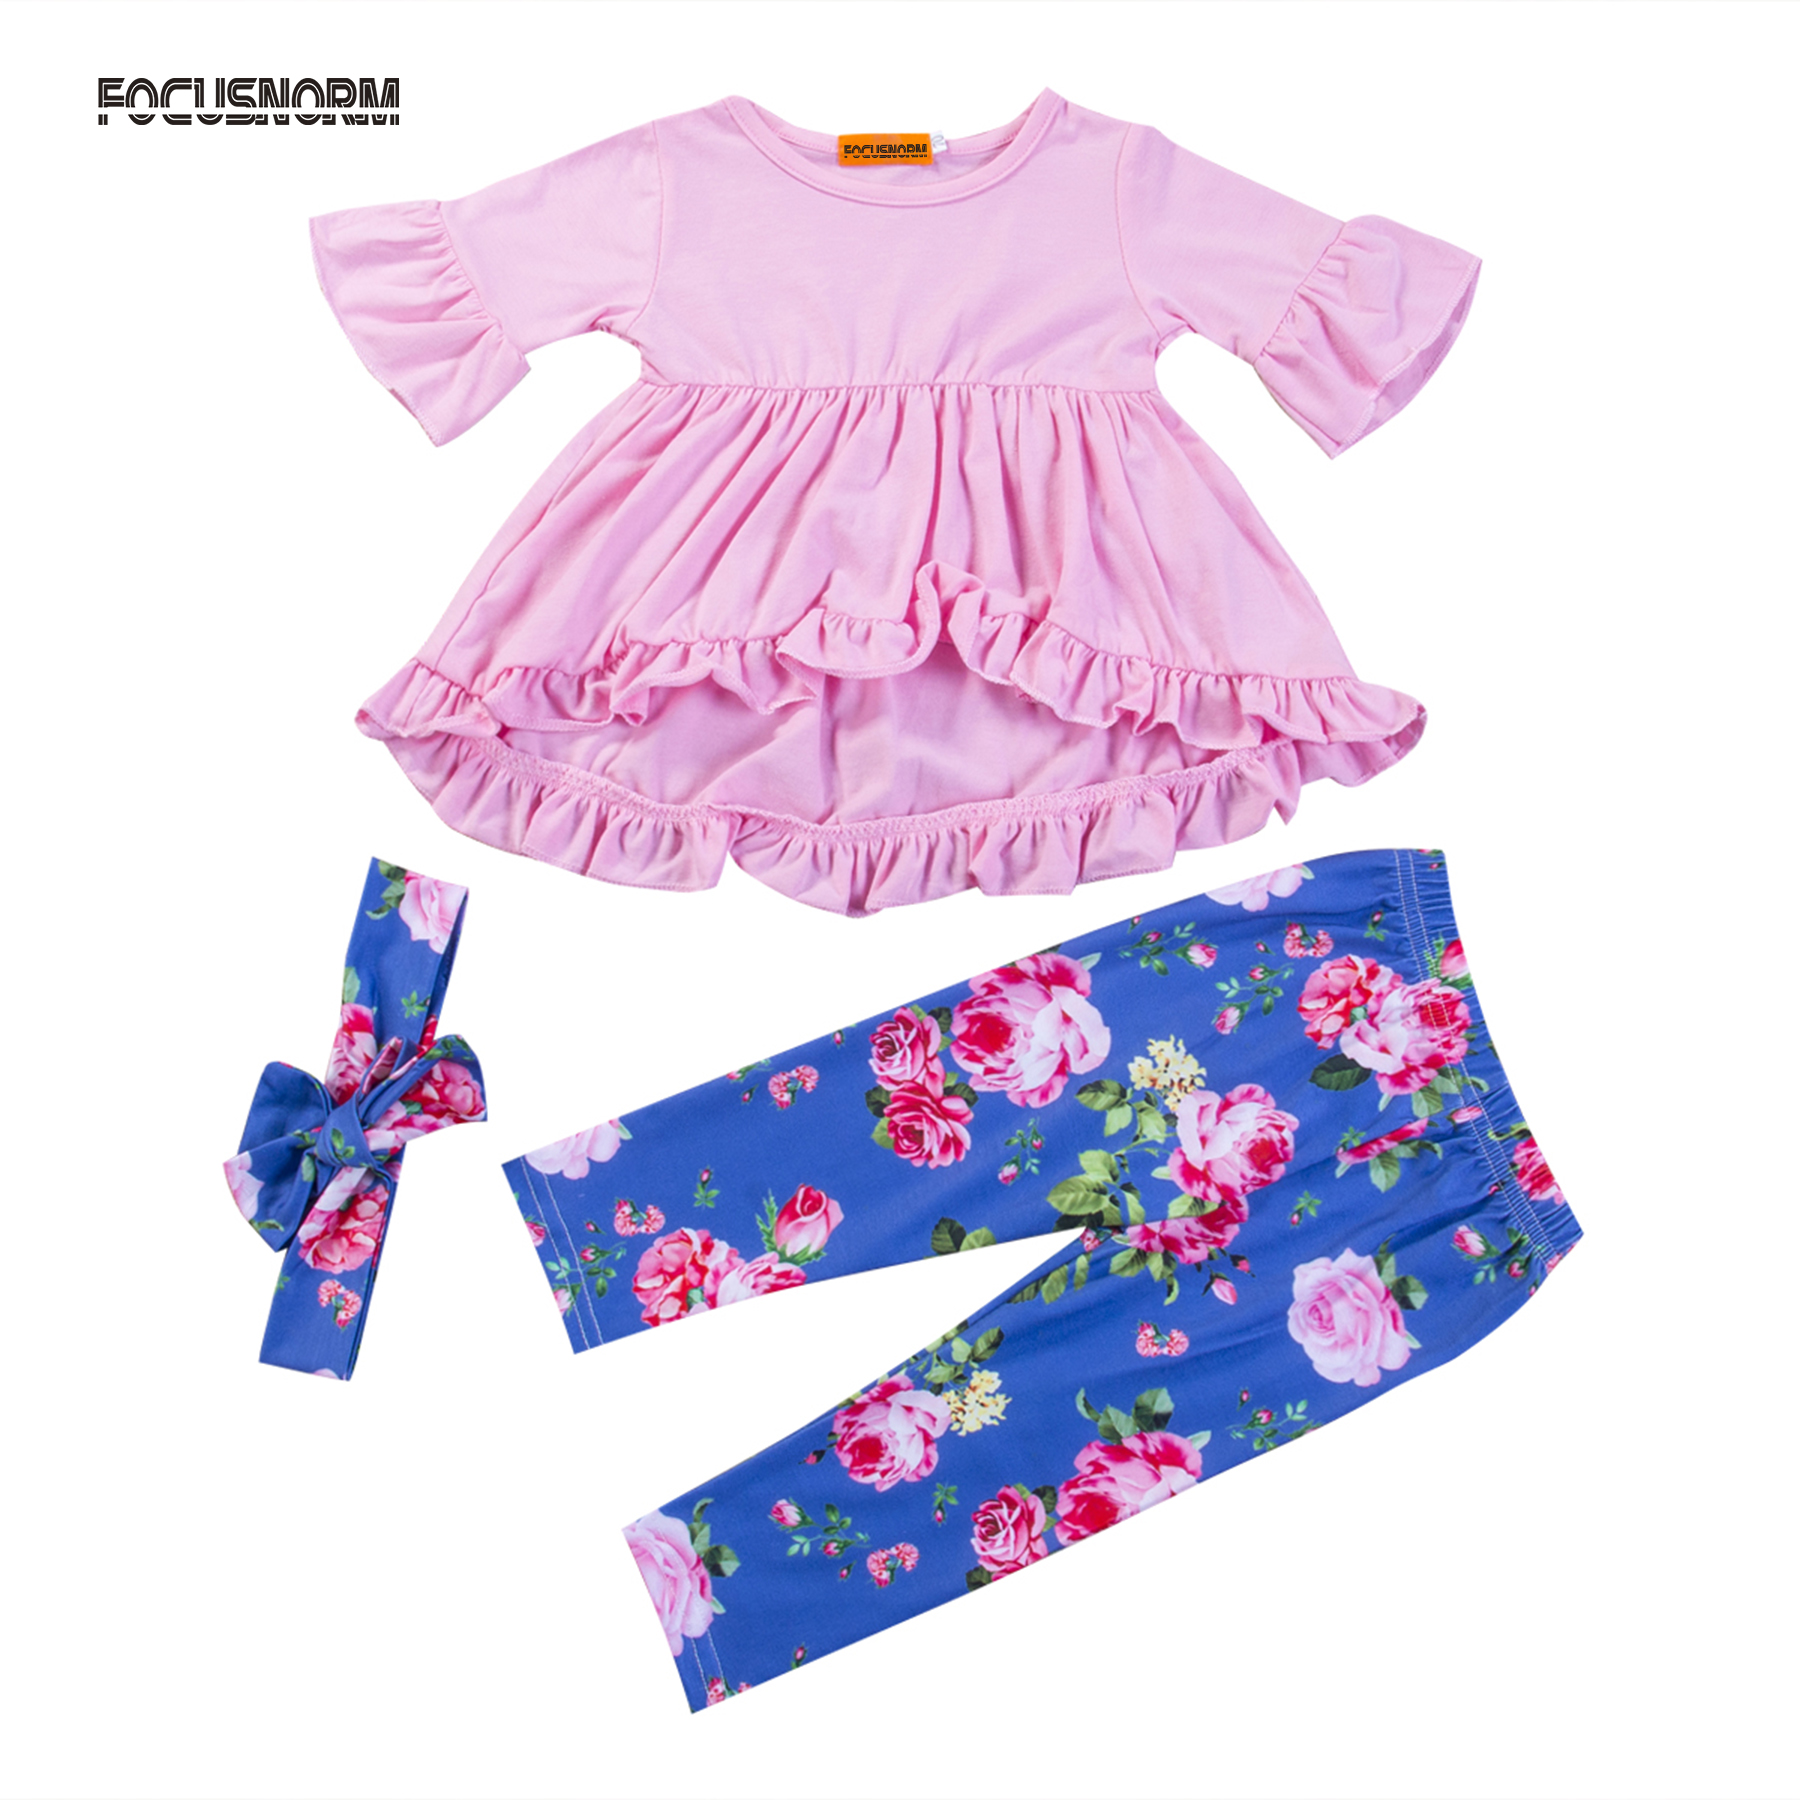 3pcs Infant Baby Girls Clothes Set Ruffle Tunic Top Shirt + Floral Long Pants + Headband Fashion Outfits 3pcs set newborn infant baby boy girl clothes 2017 summer short sleeve leopard floral romper bodysuit headband shoes outfits